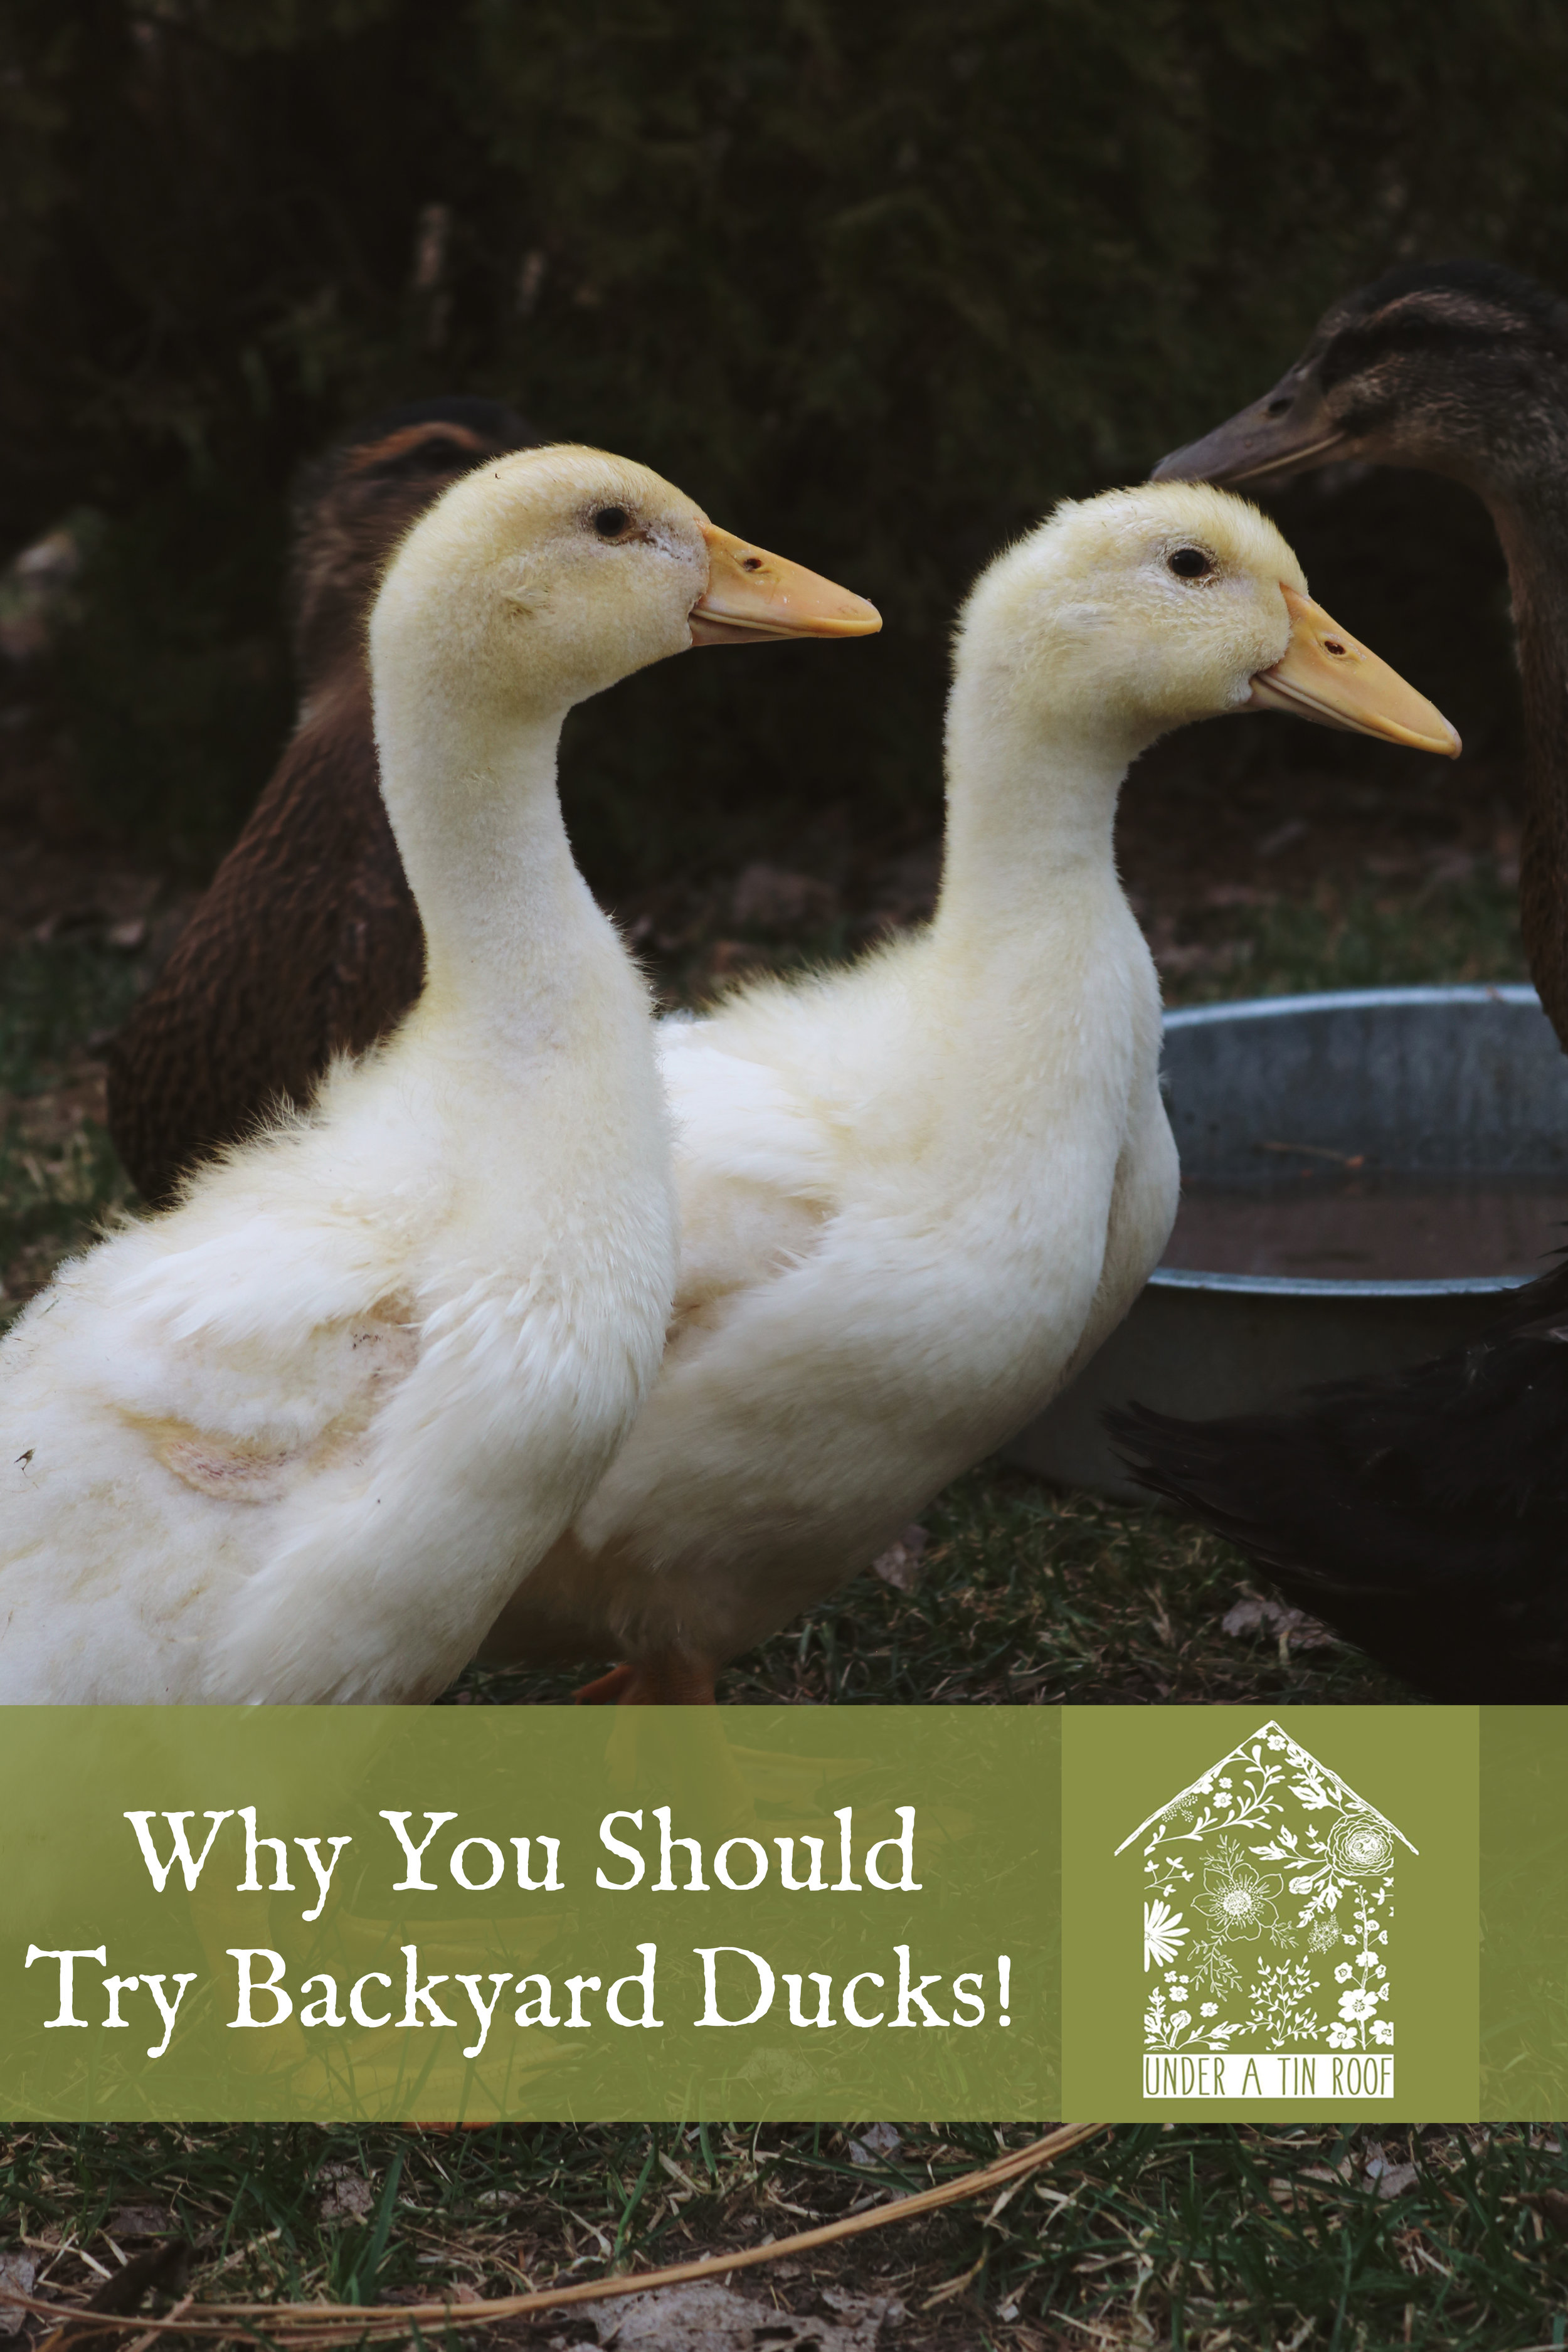 Why You Should Try Backyard Ducks! - Under A Tin Roof Blog